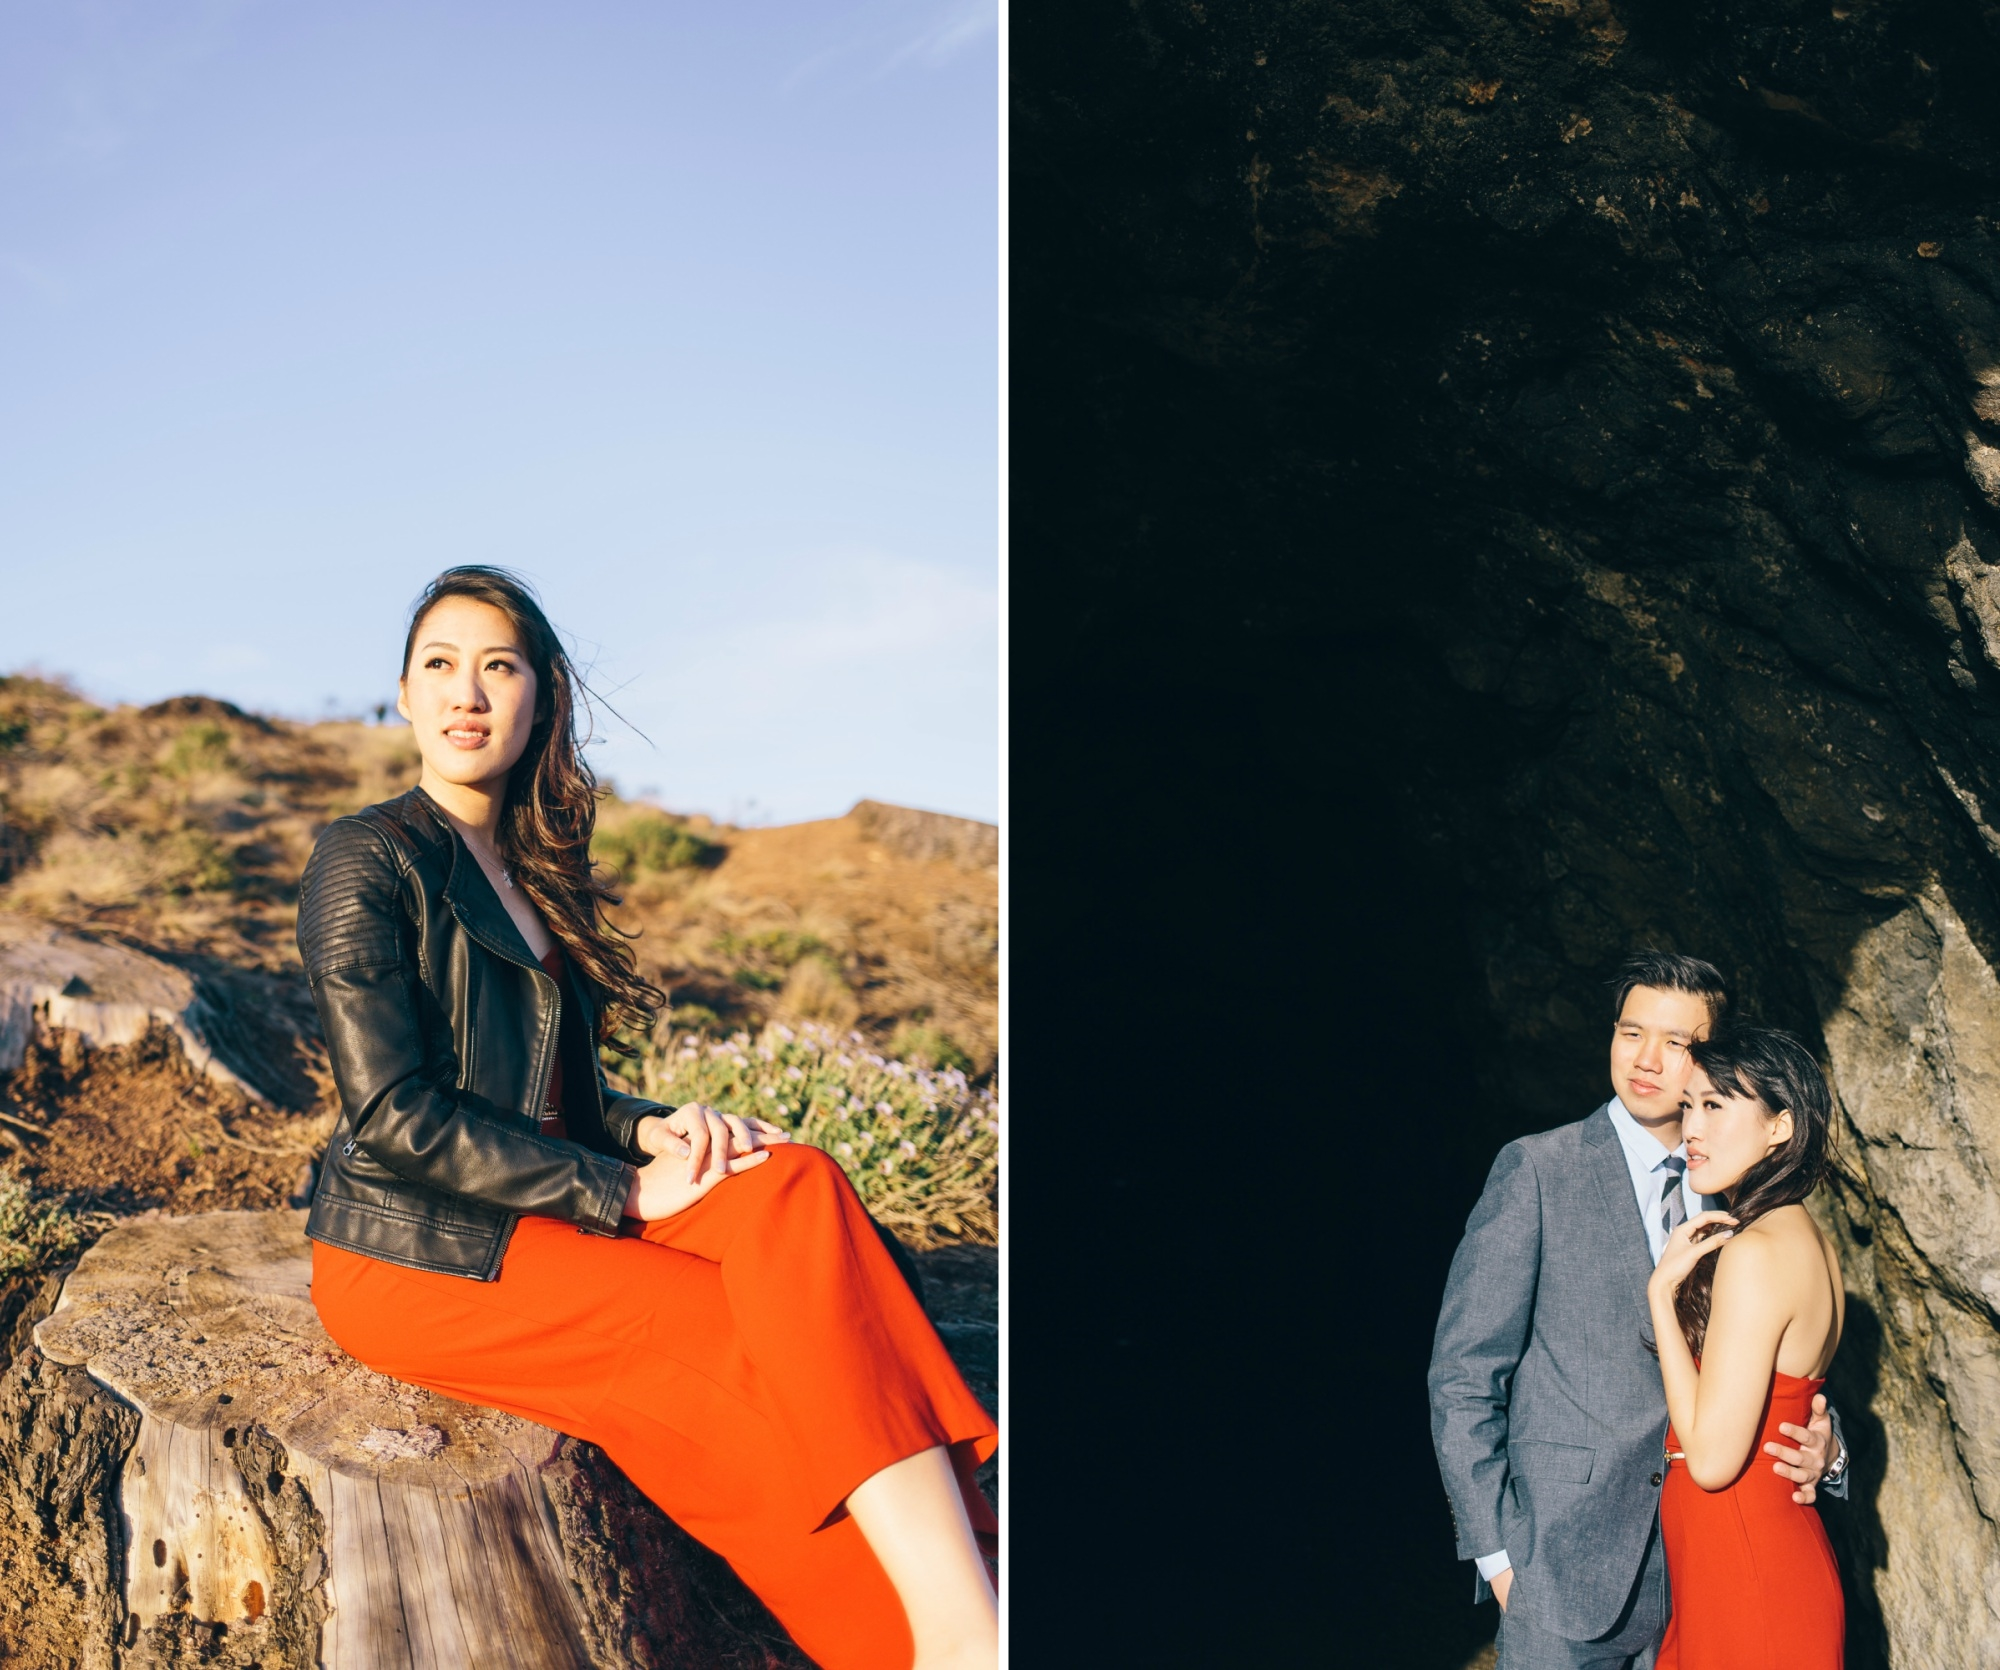 Pre-Wedding Photos in San Francisco by JBJ Pictures Pre-Wedding Photographer, Engagement Session and Wedding Photography in Napa, Sonoma, SF Bay Area (32).jpg